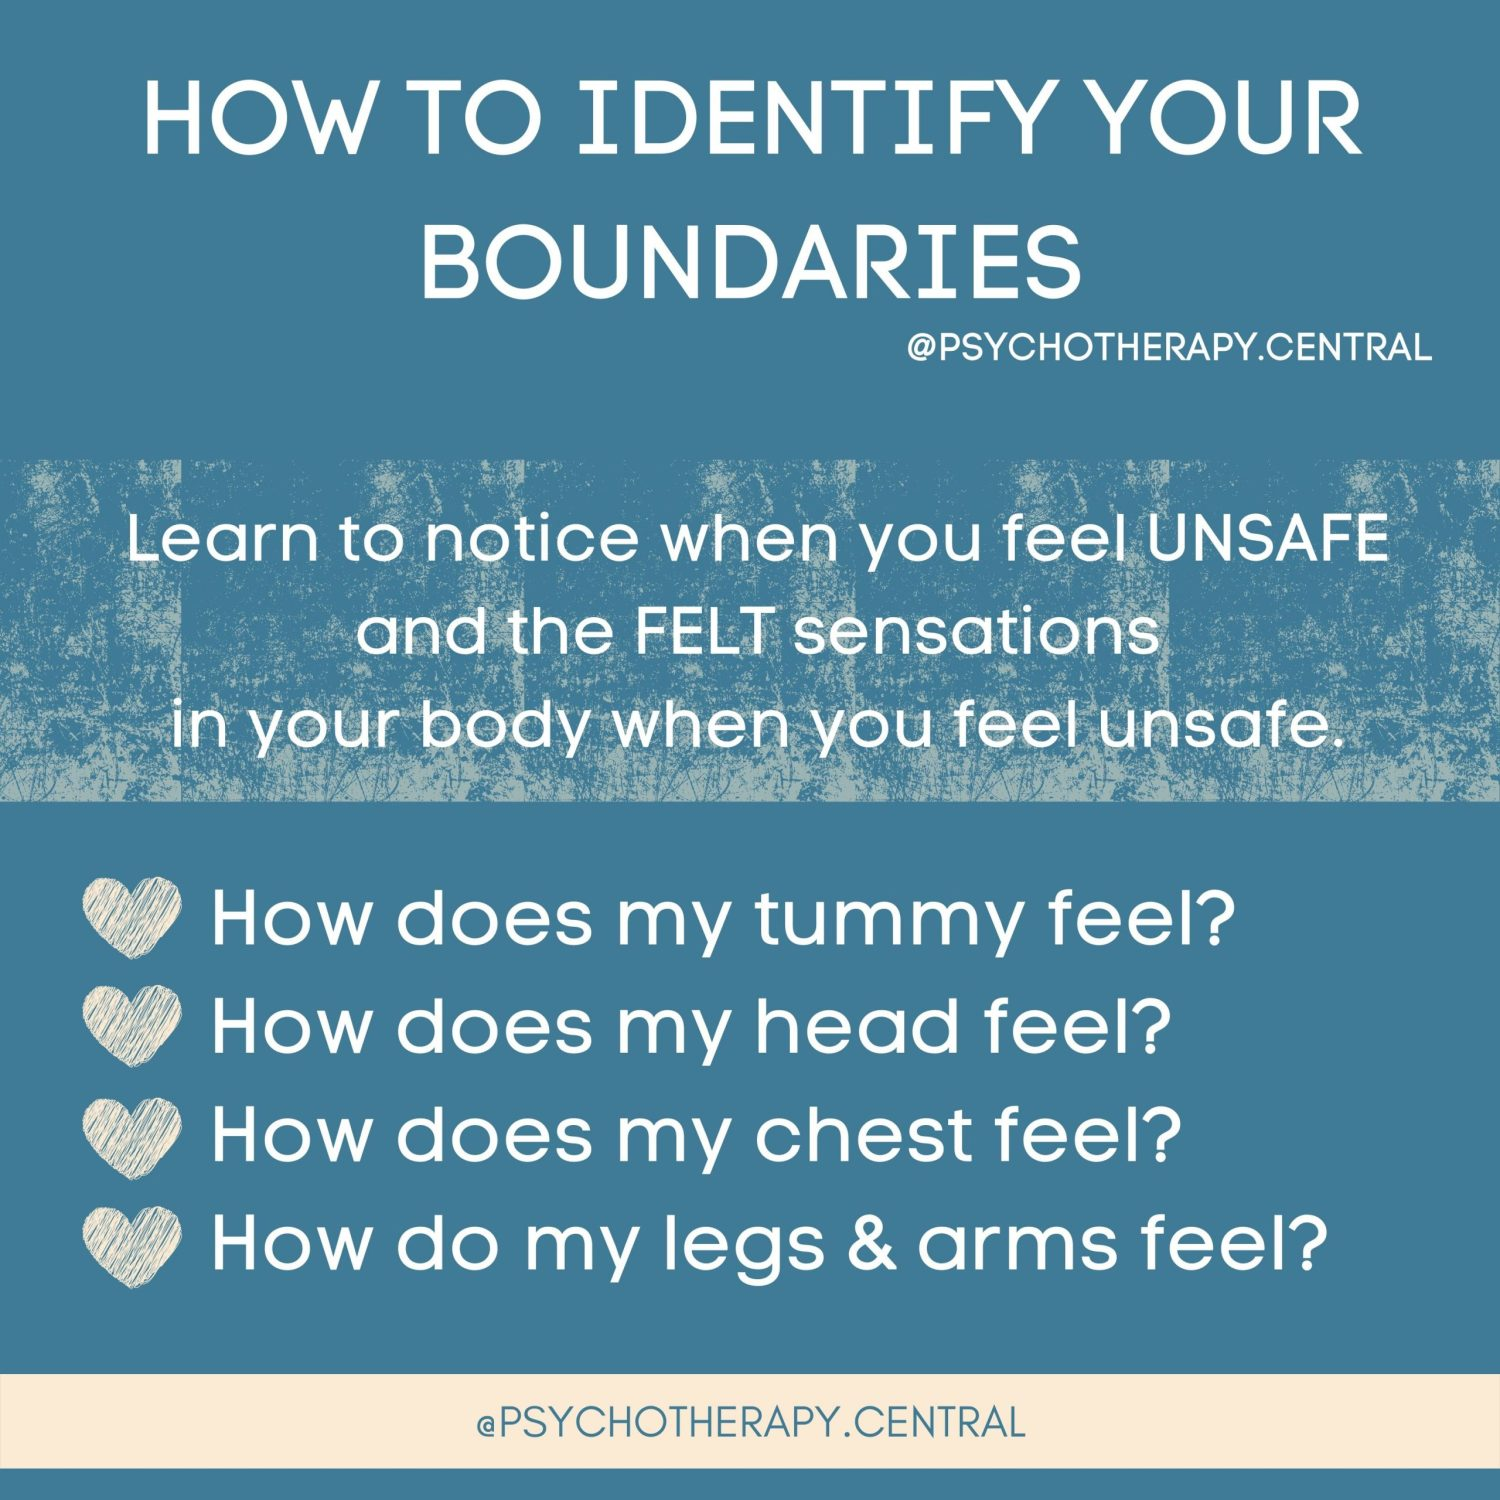 How to Identify Your Boundaries